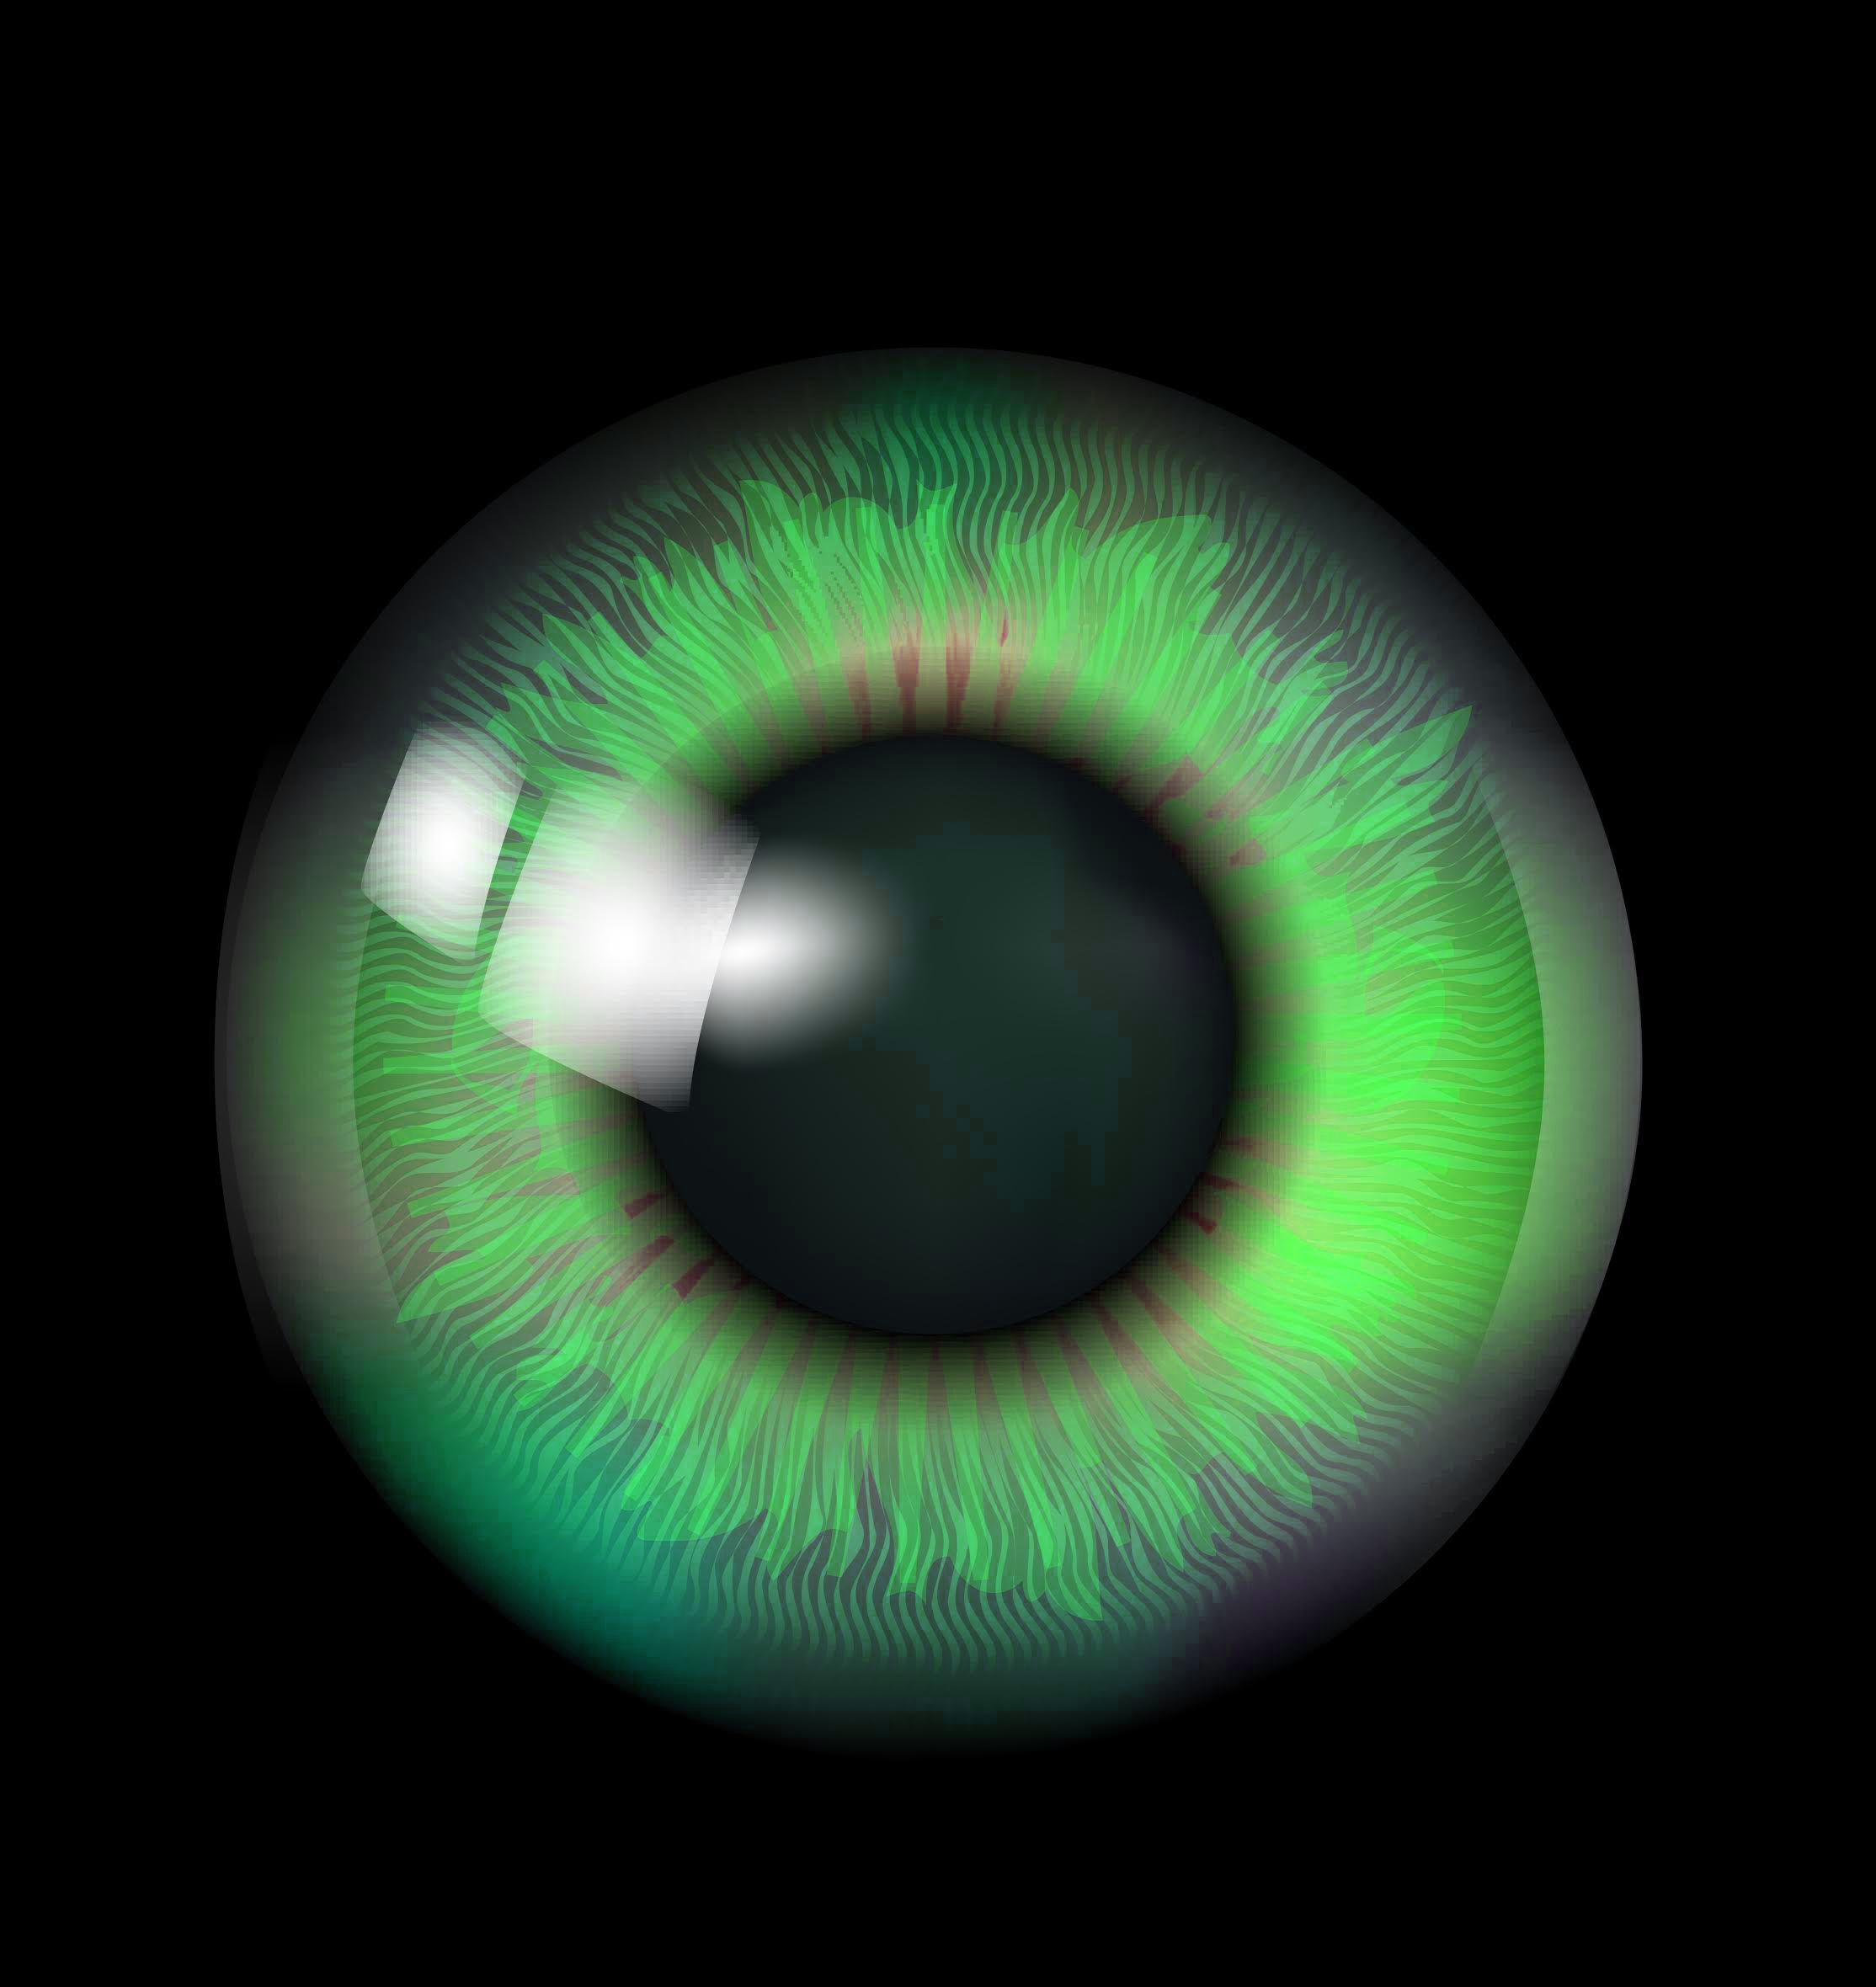 A large green eye